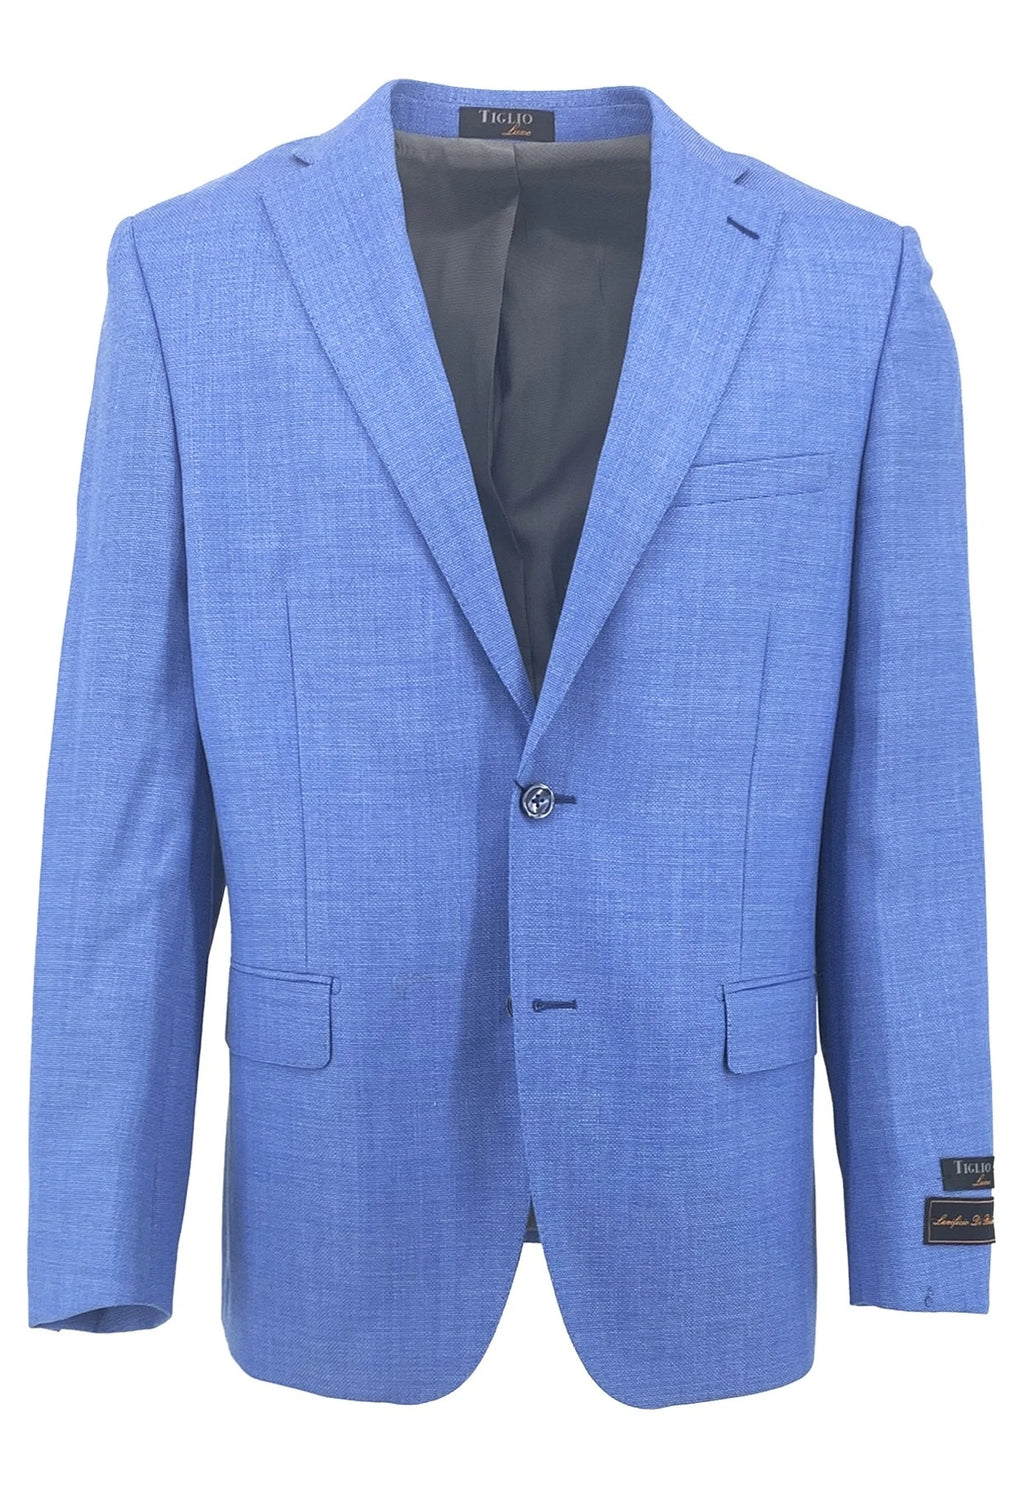 Dolcetto Sky Blue Modern Fit, Pure Wool Jacket by Tiglio Luxe TL10712/331